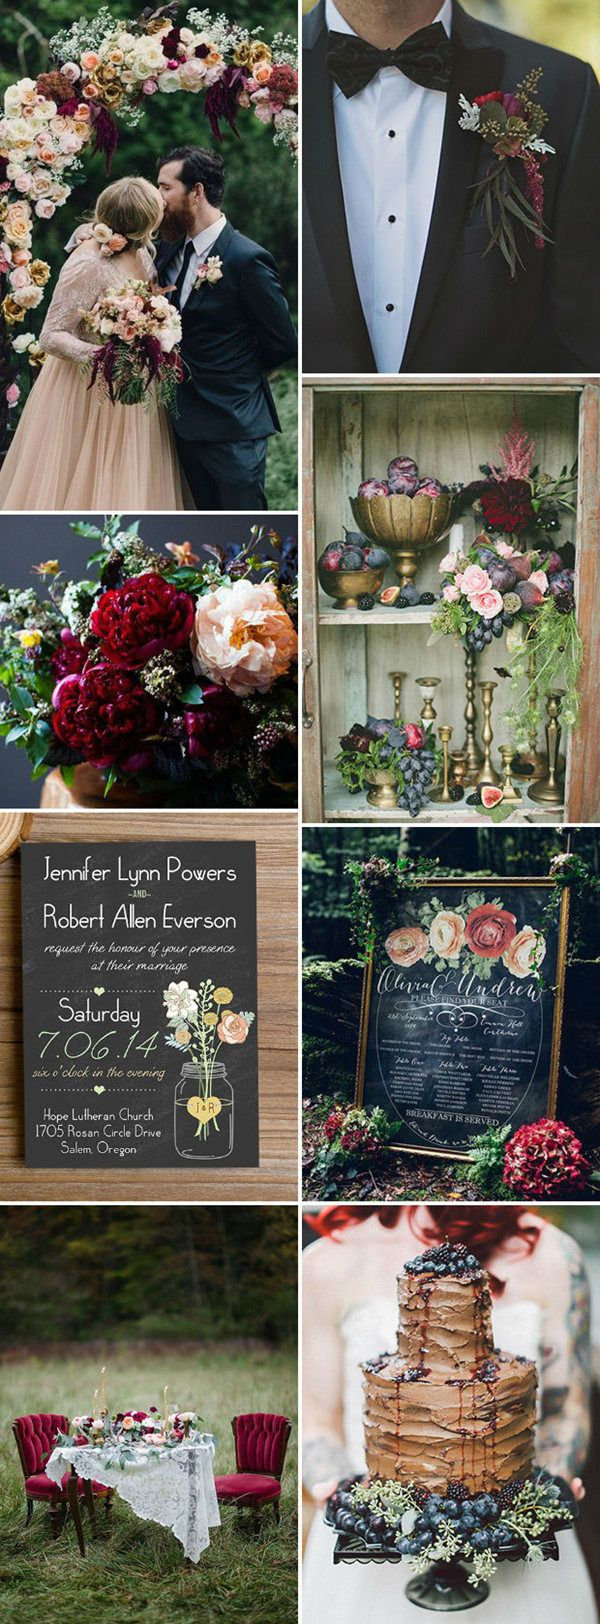 berry red and black inspiration woodland wedding